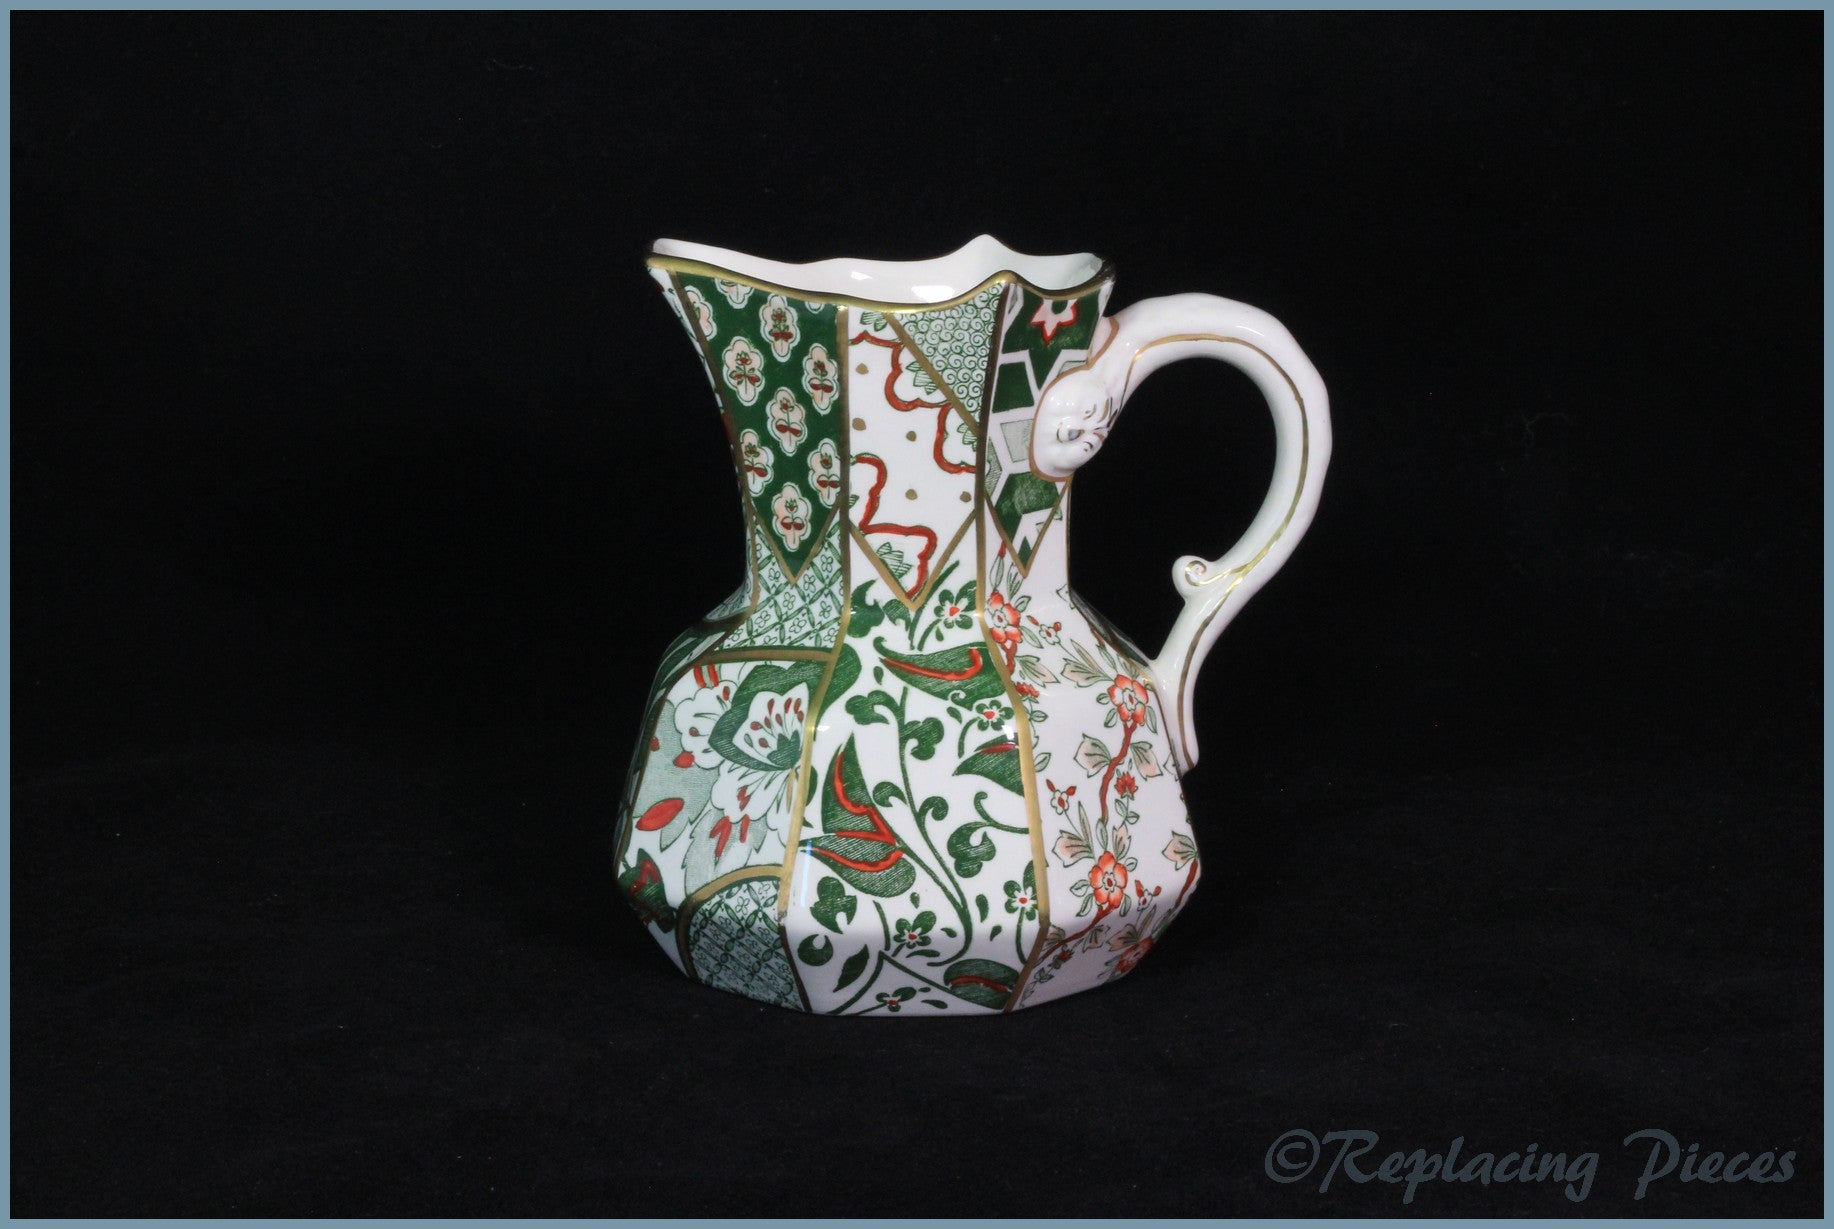 Masons - Applique Green - Hydra Jug (medium)